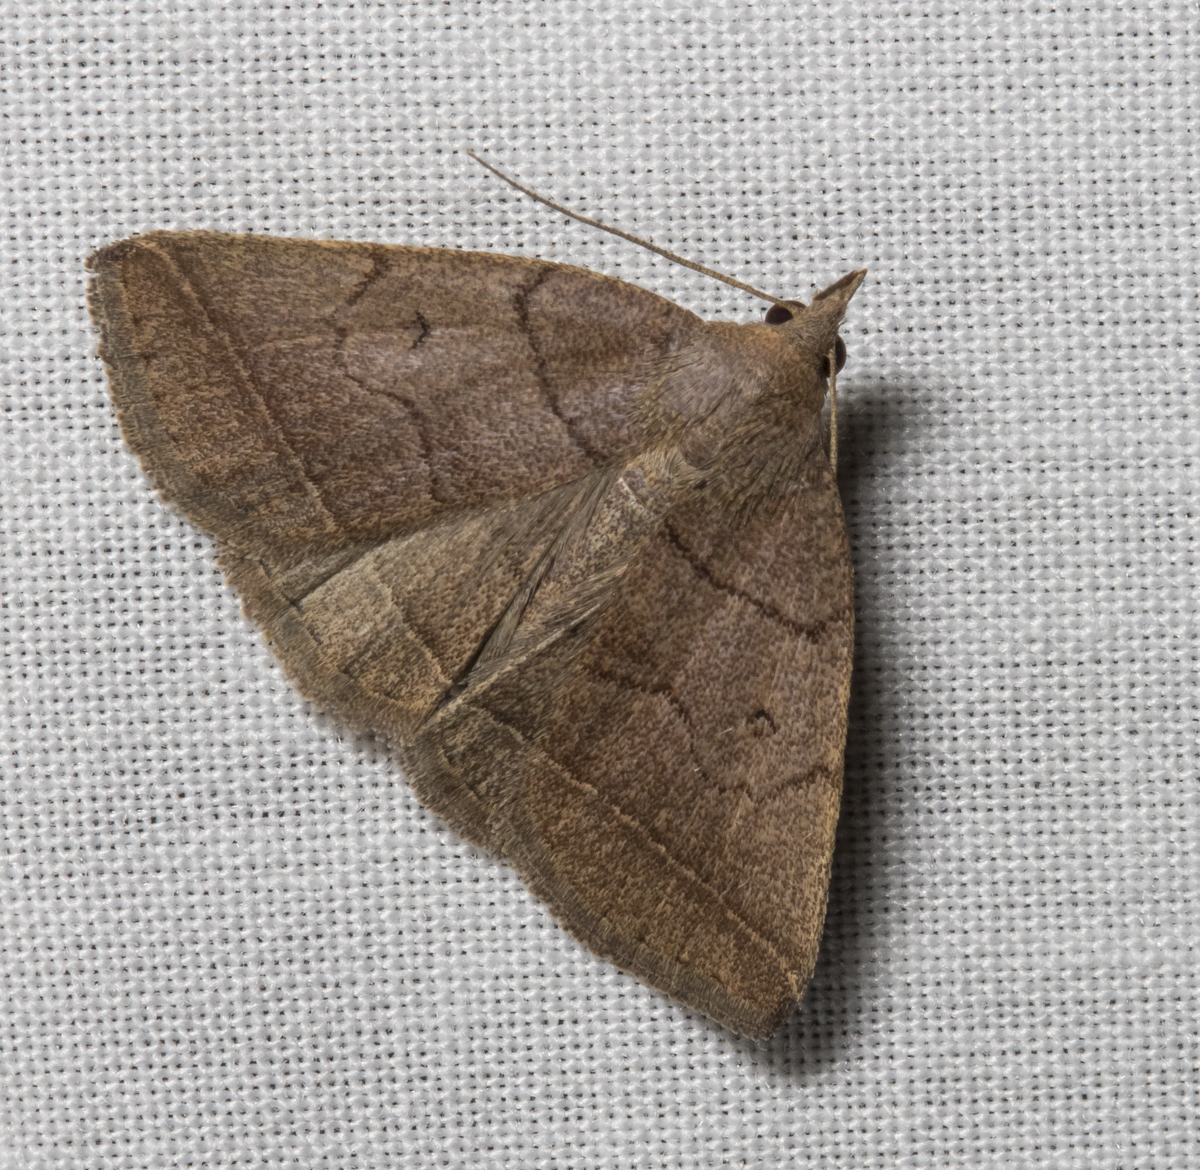 Early Fan-foot, Zanclognatha cruralis